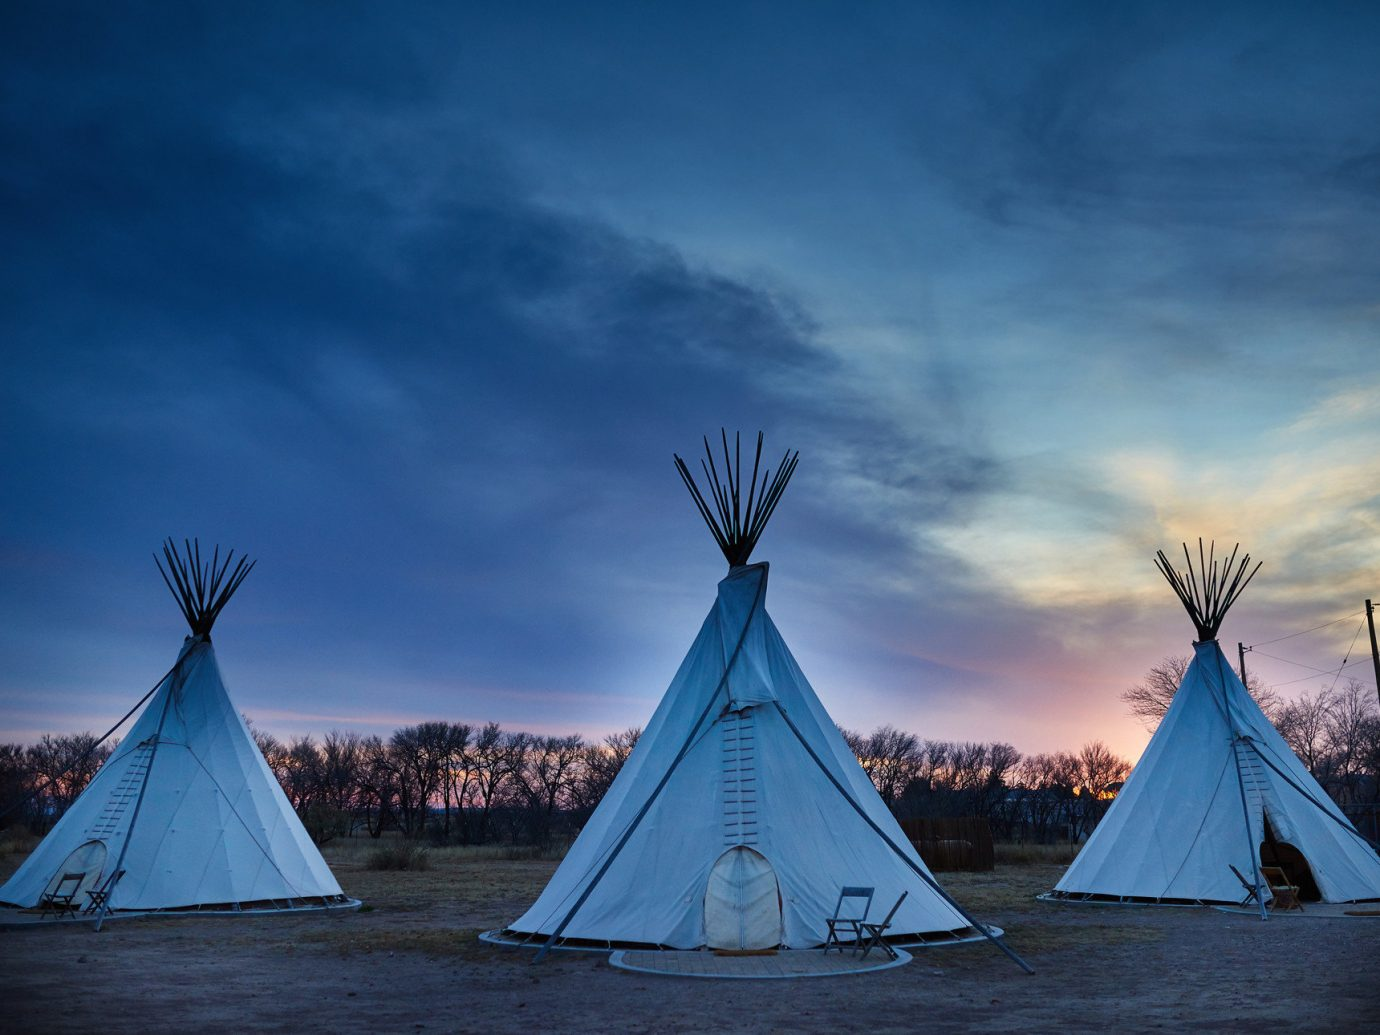 artistic artsy calm dawn dusk Exterior Glamping Hip Hotels isolation Luxury Travel Outdoors + Adventure quirky remote serene Solo Travel teepee trendy Trip Ideas Weekend Getaways tepee sky outdoor building water blue cloud light Sea horizon Winter night evening morning Ocean sunlight ice reflection Sunset lit wind several